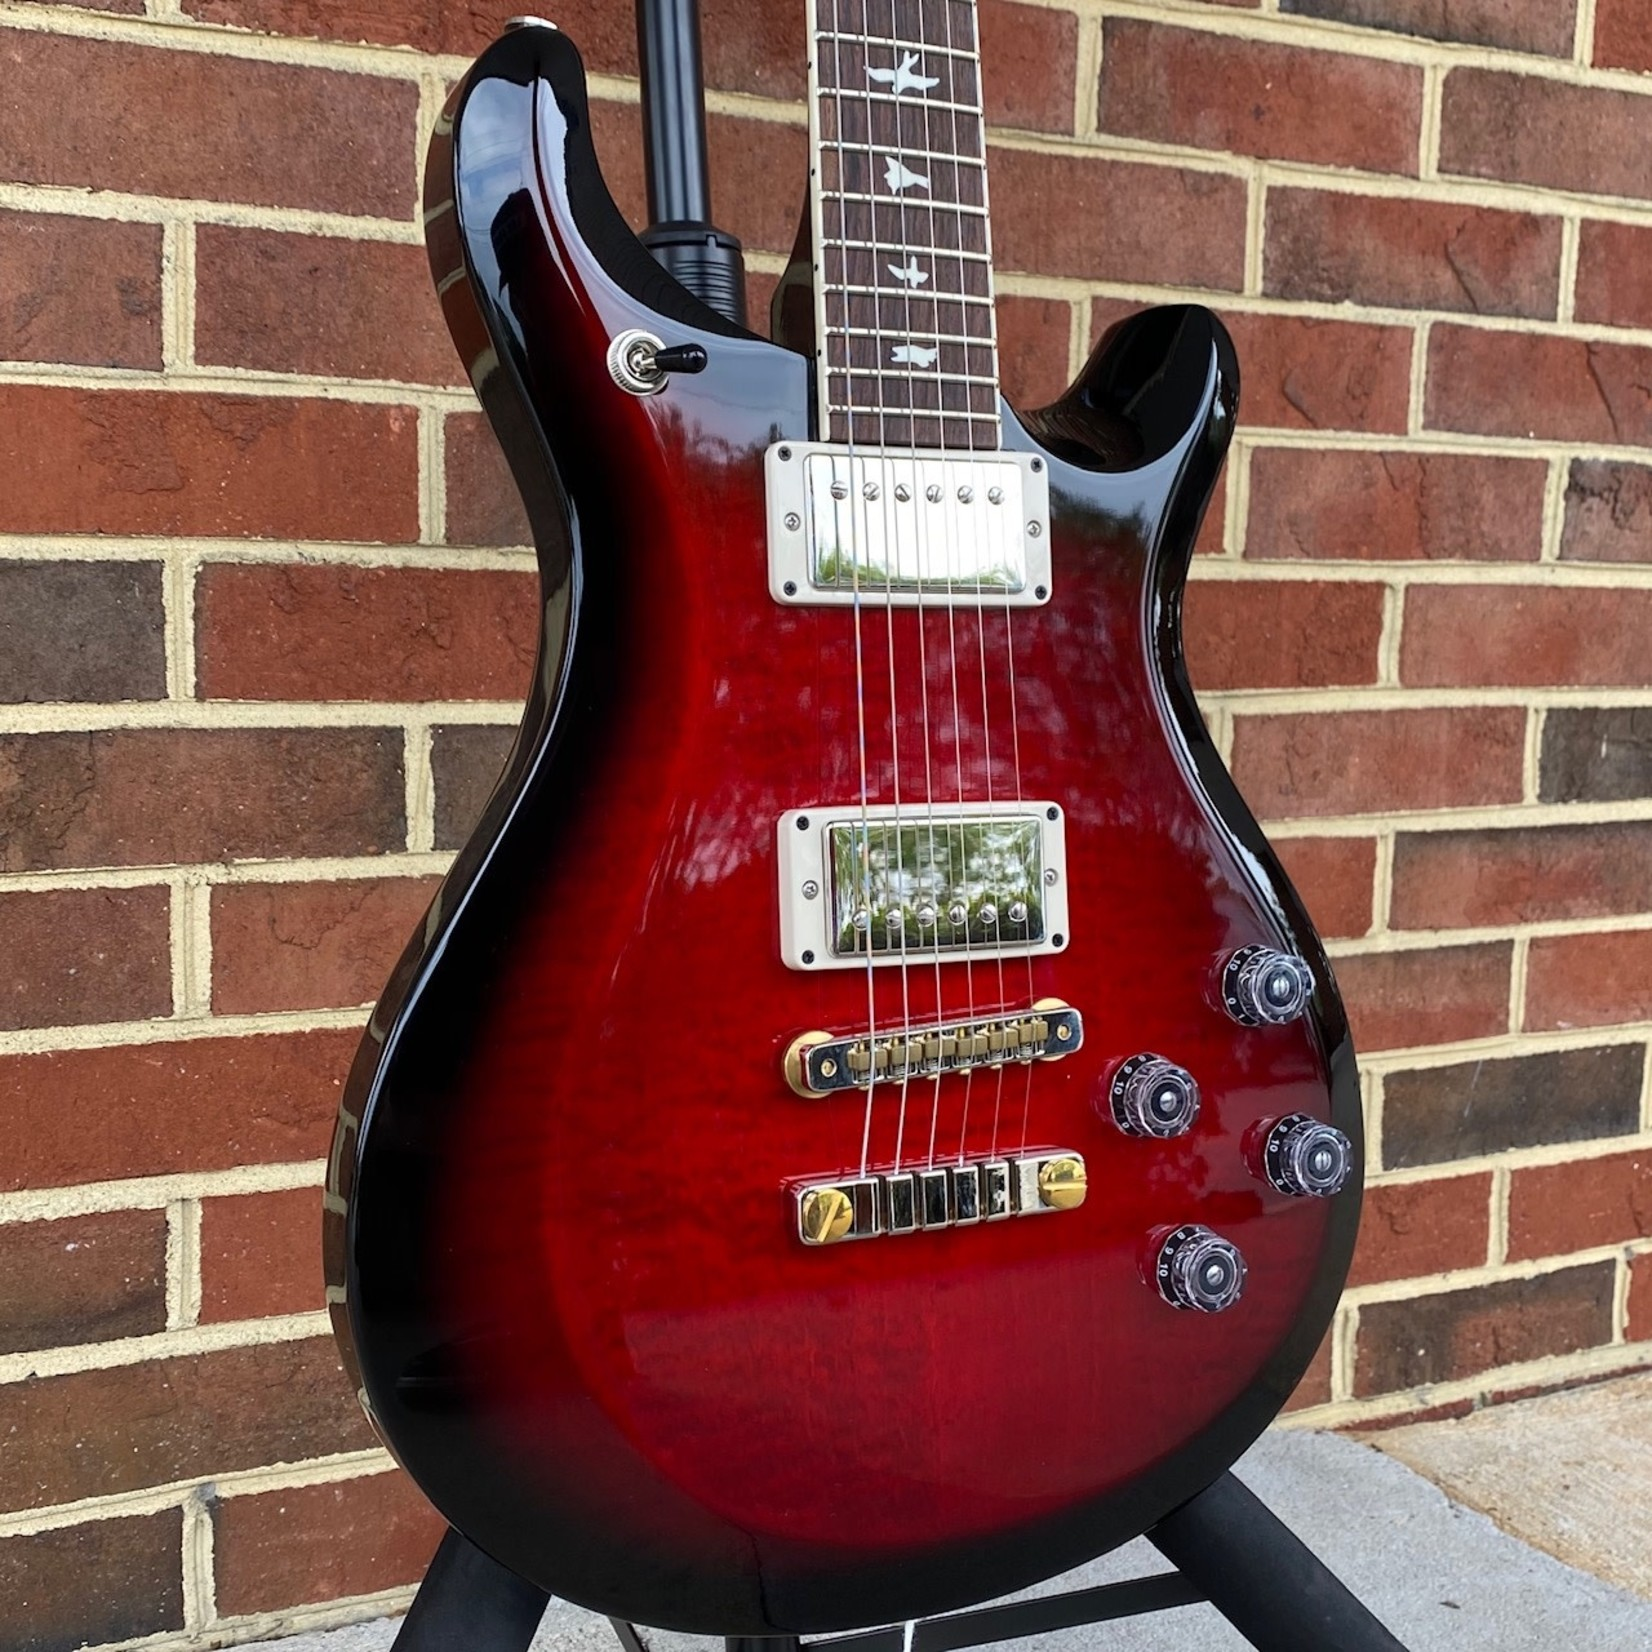 Paul Reed Smith Paul Reed Smith S2 McCarty 594, Custom Color - Scarlet Smokeburst, Pattern Vintage, Gig Bag